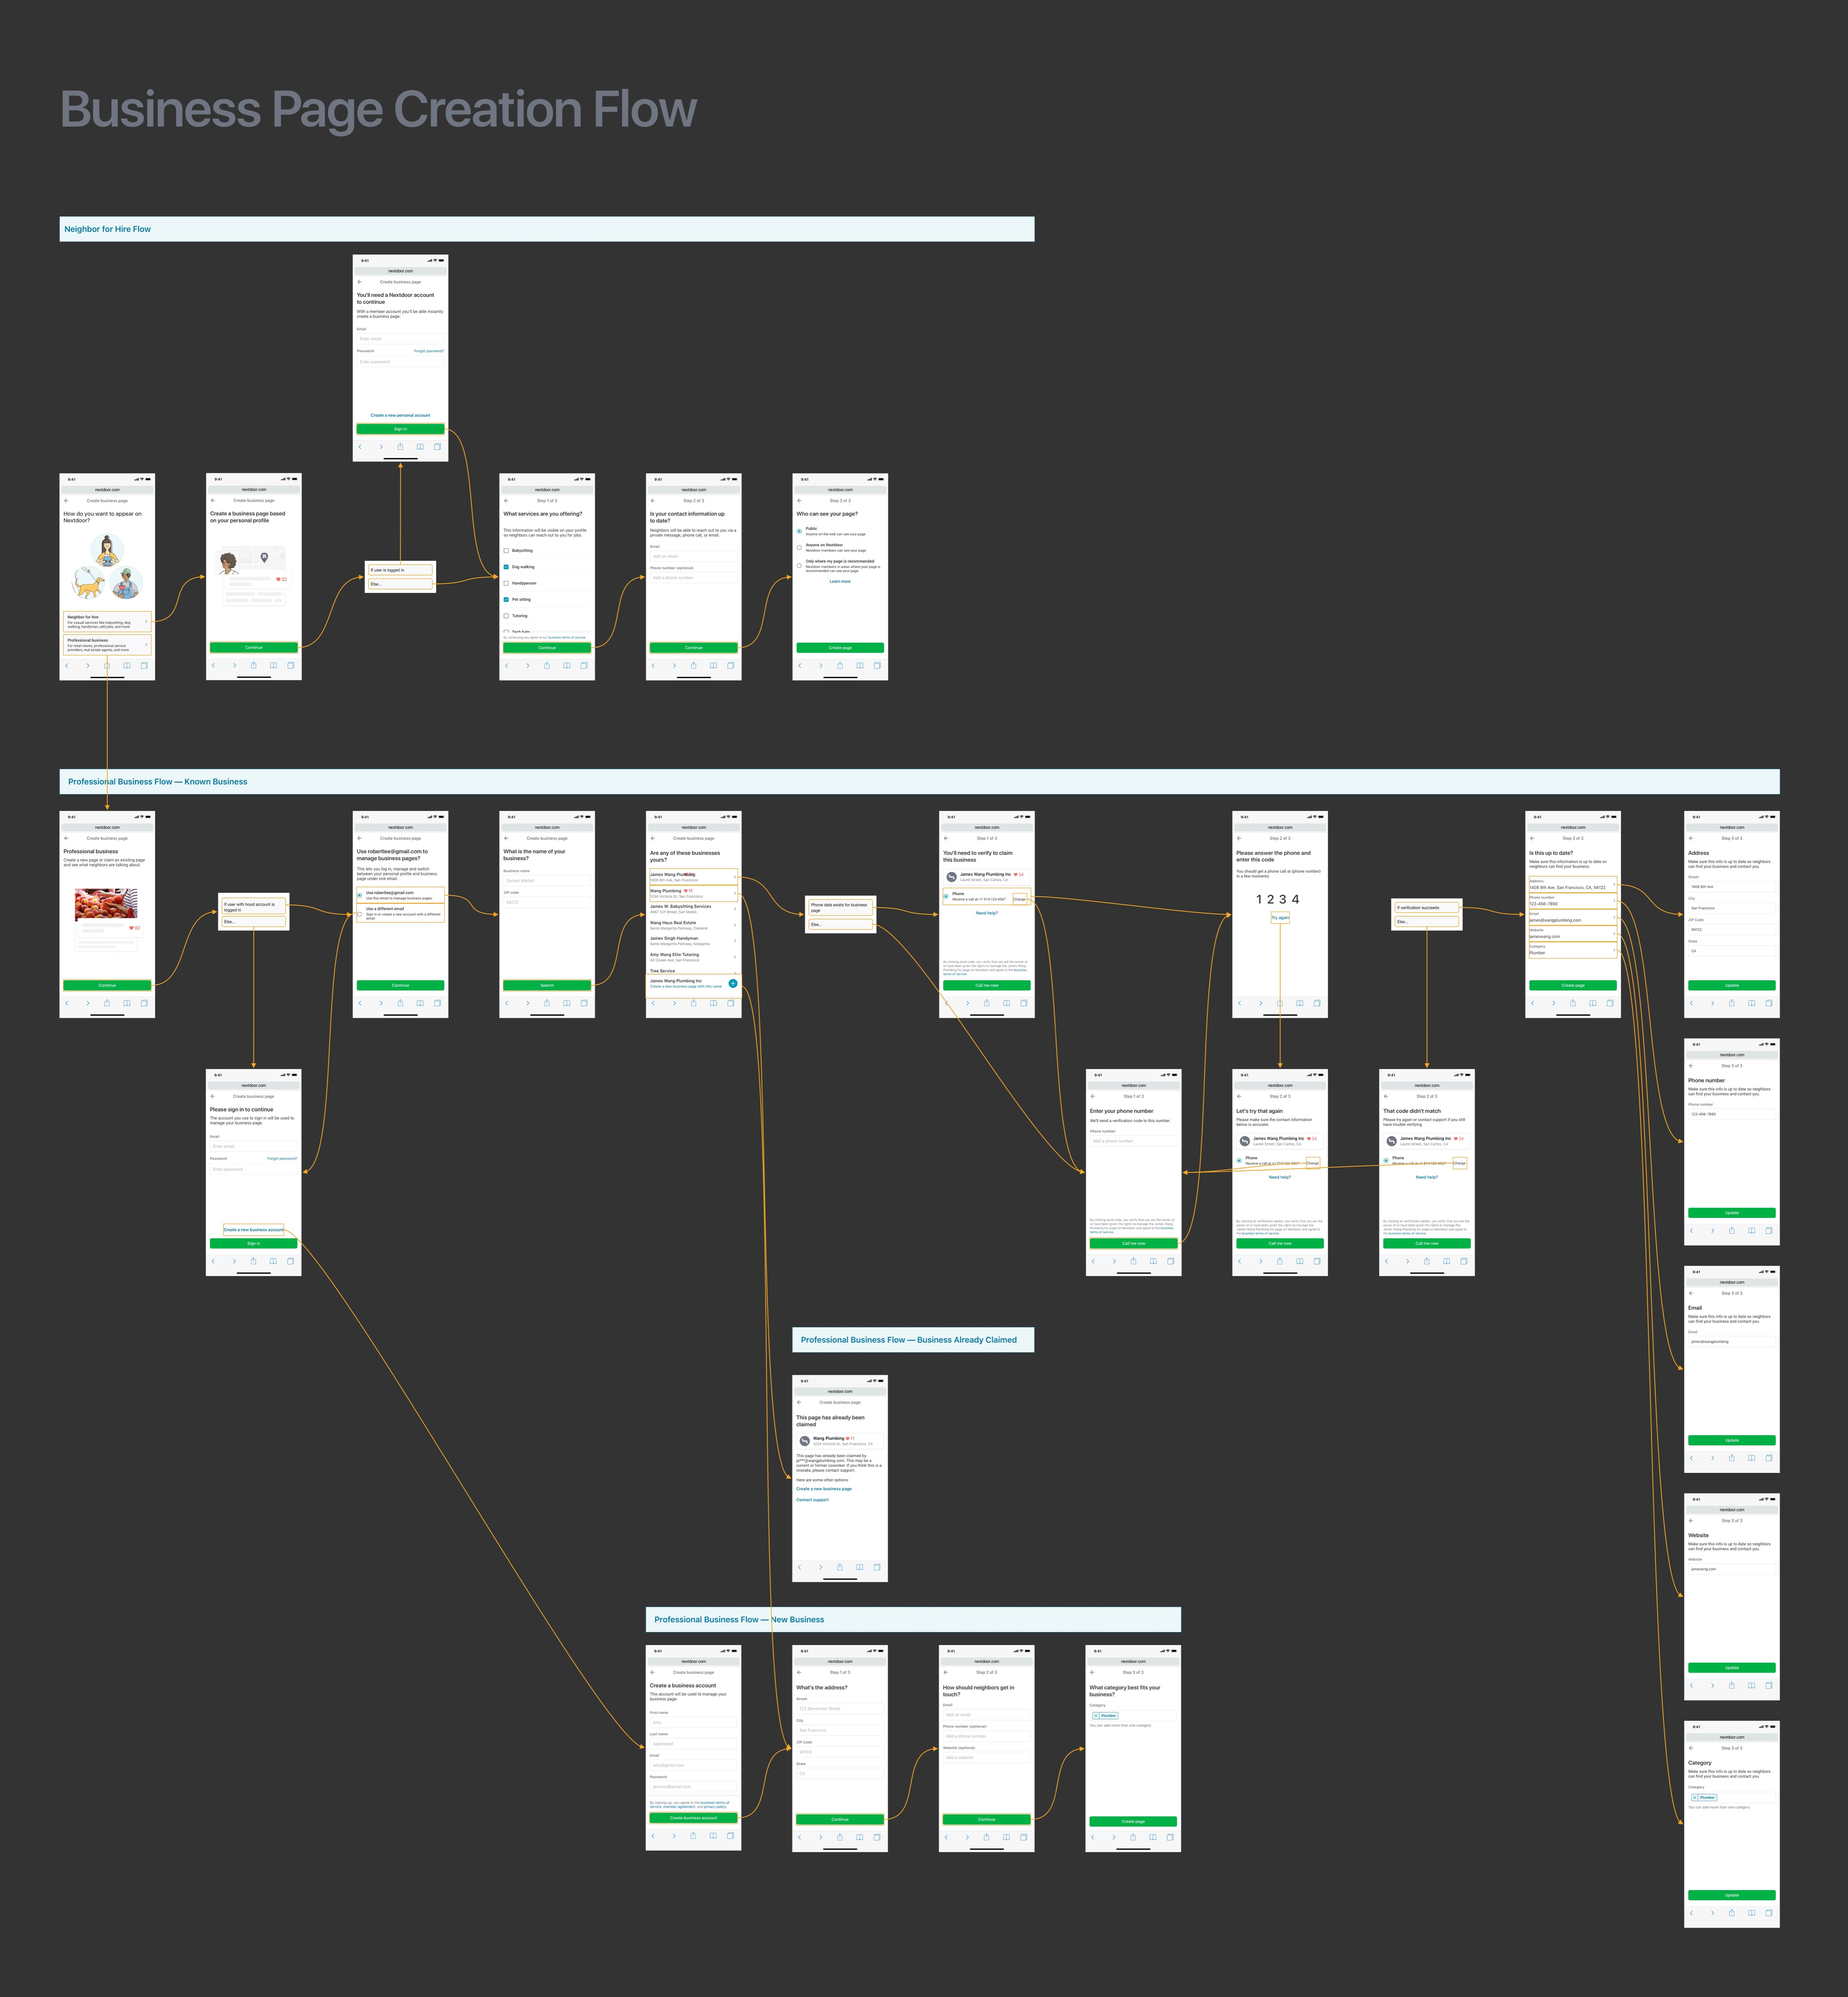 Page Creation Flow Chart